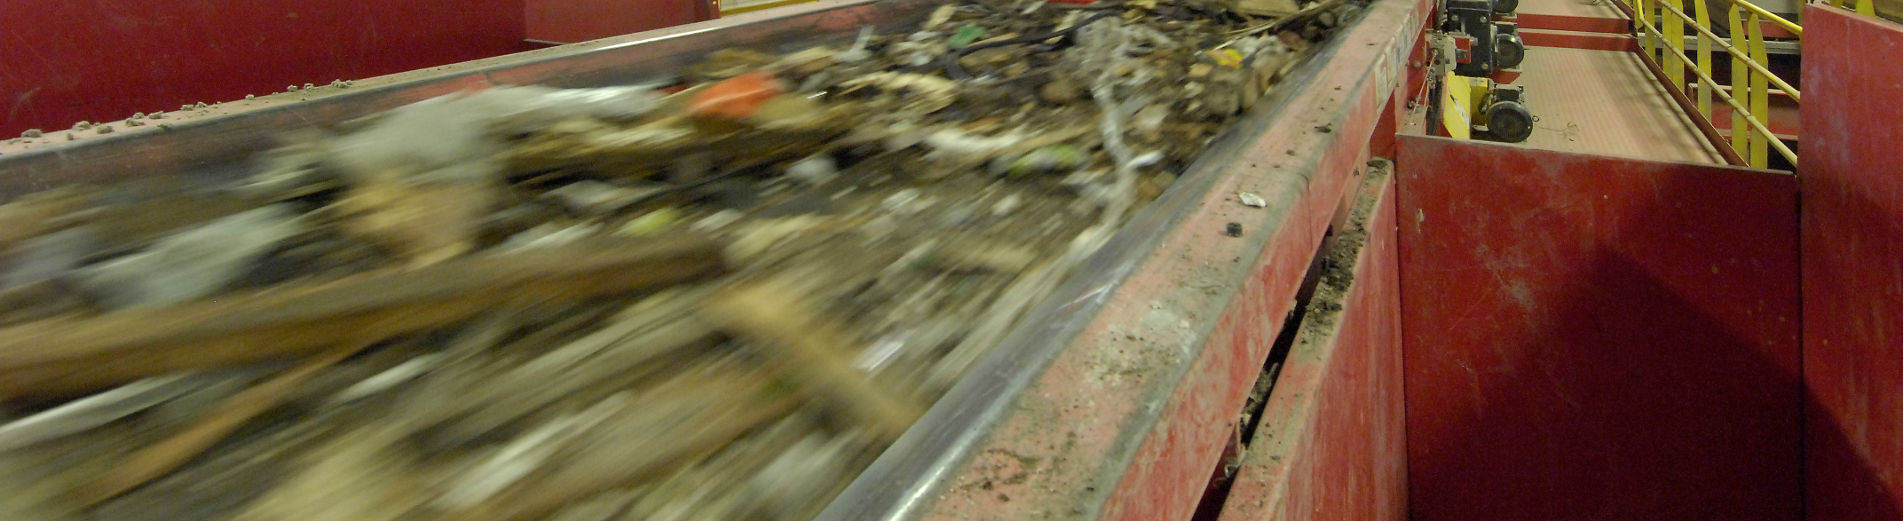 CD recycling system dust suppression